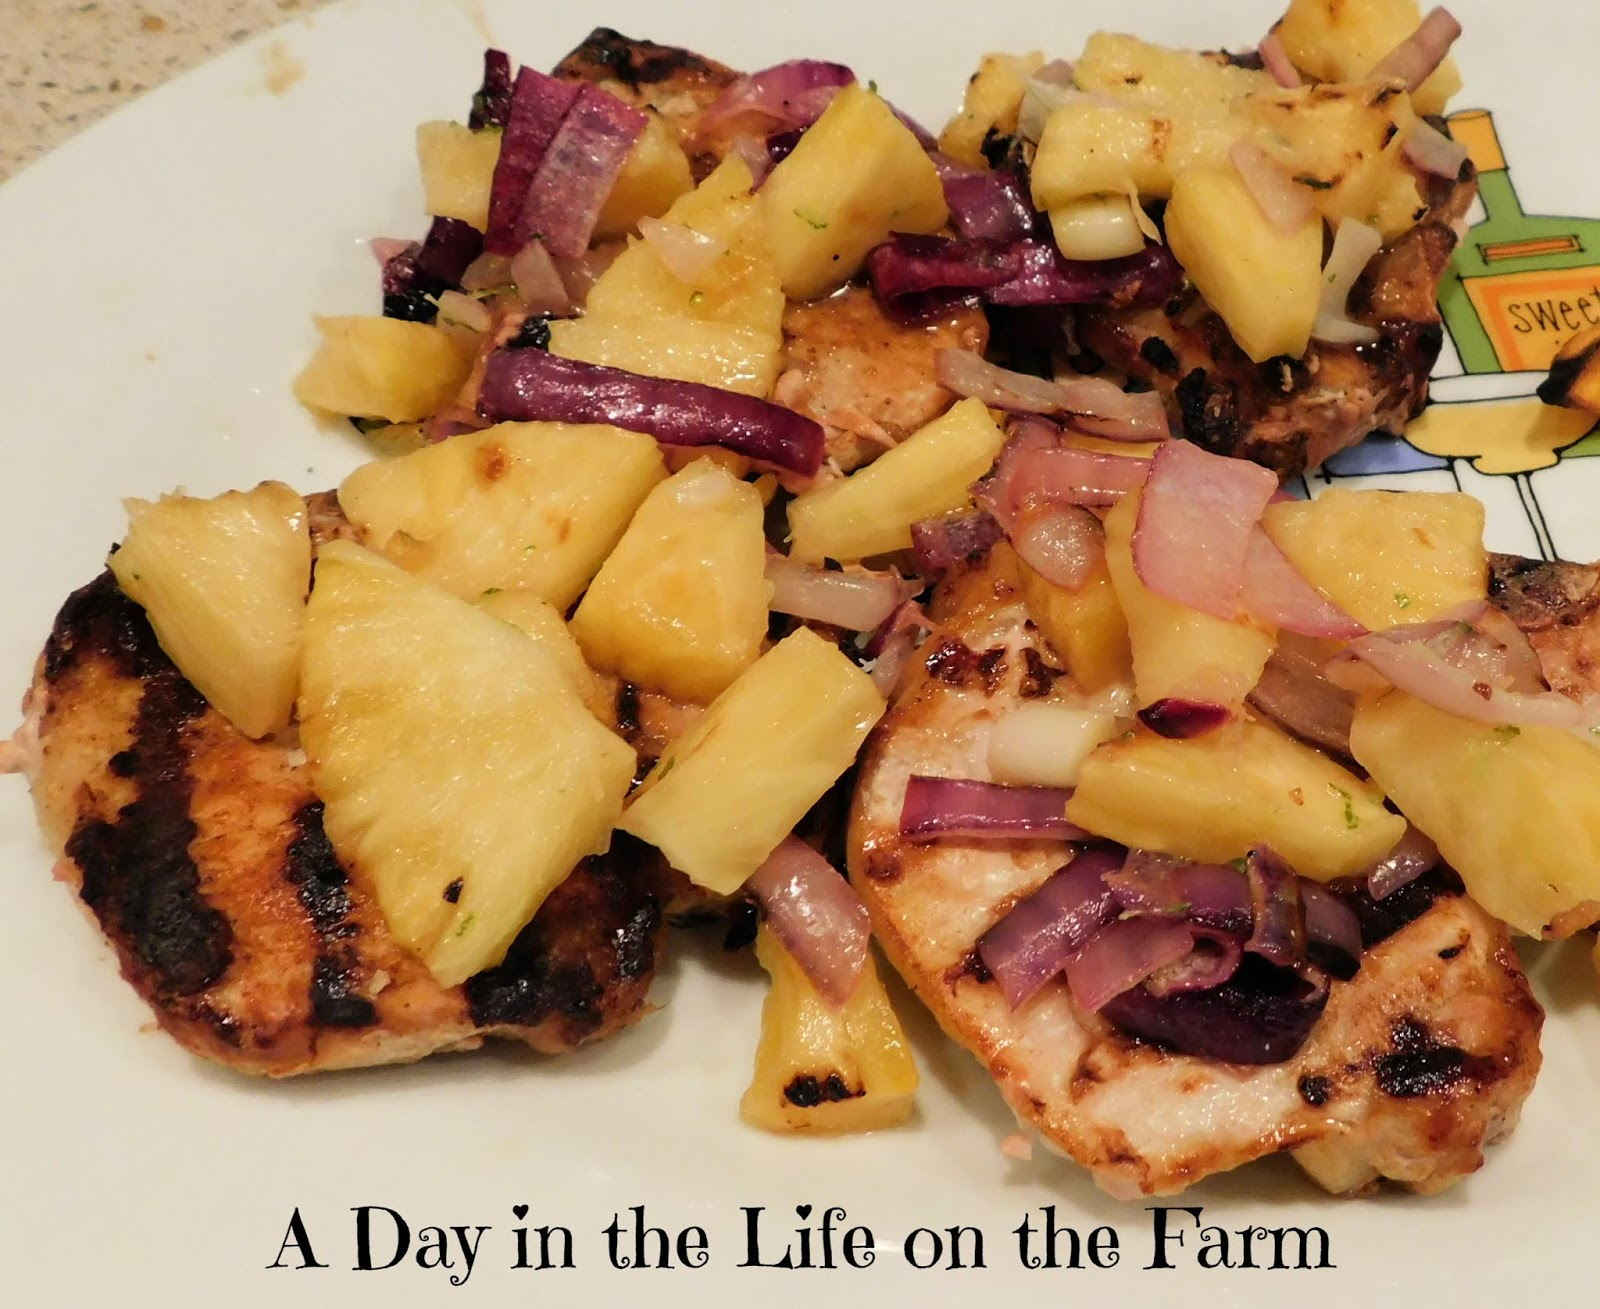 Grilled Pork Chops with Pineapple Salsa